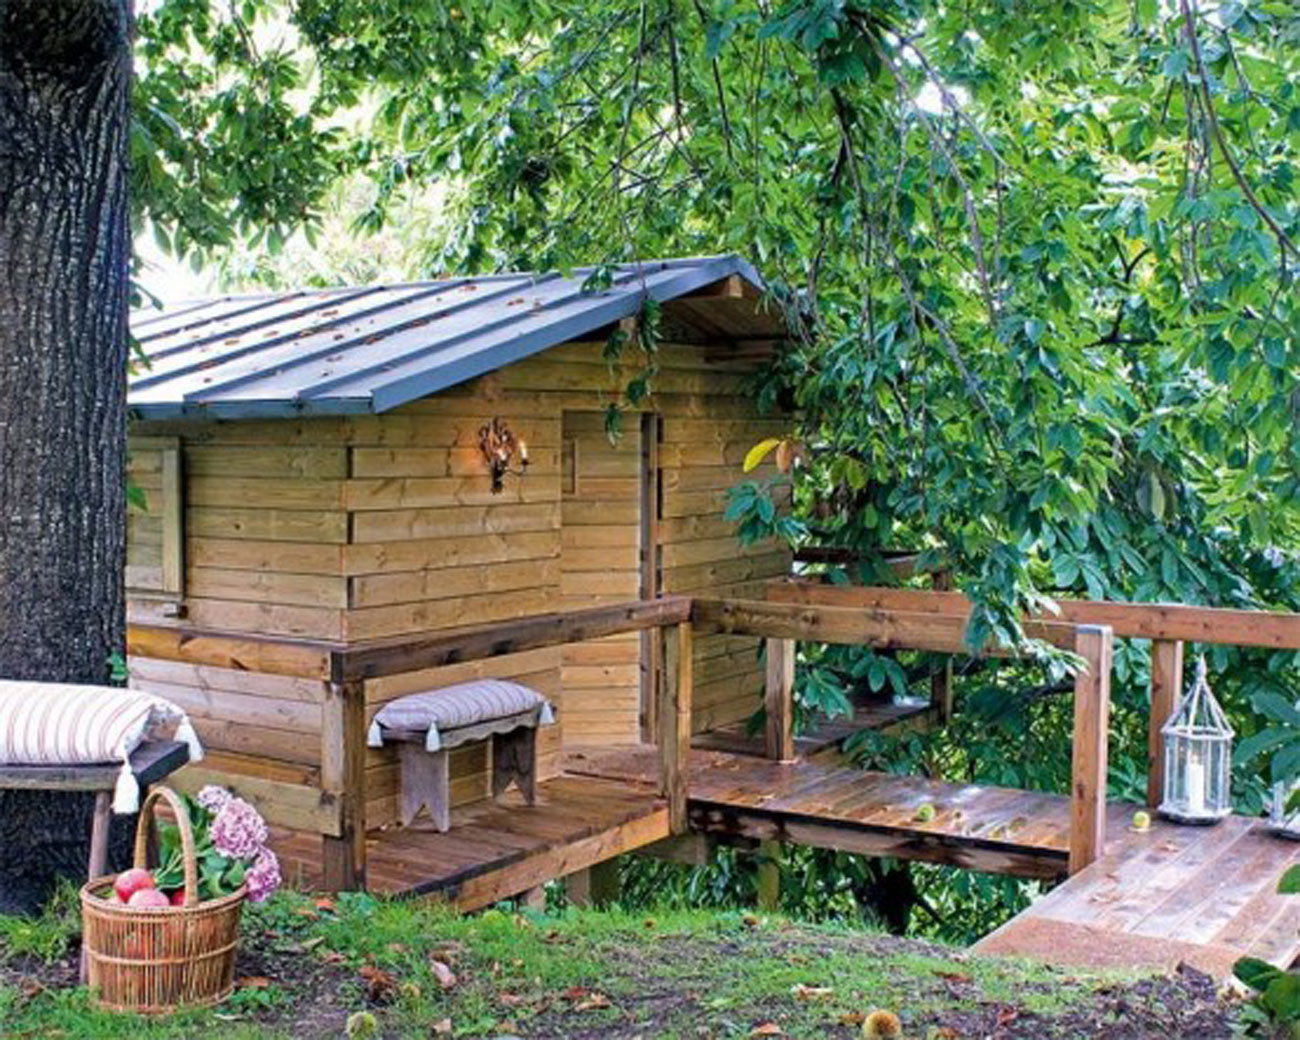 Rustic tree house mini home with wooden materials for for Jardines de casas rusticas